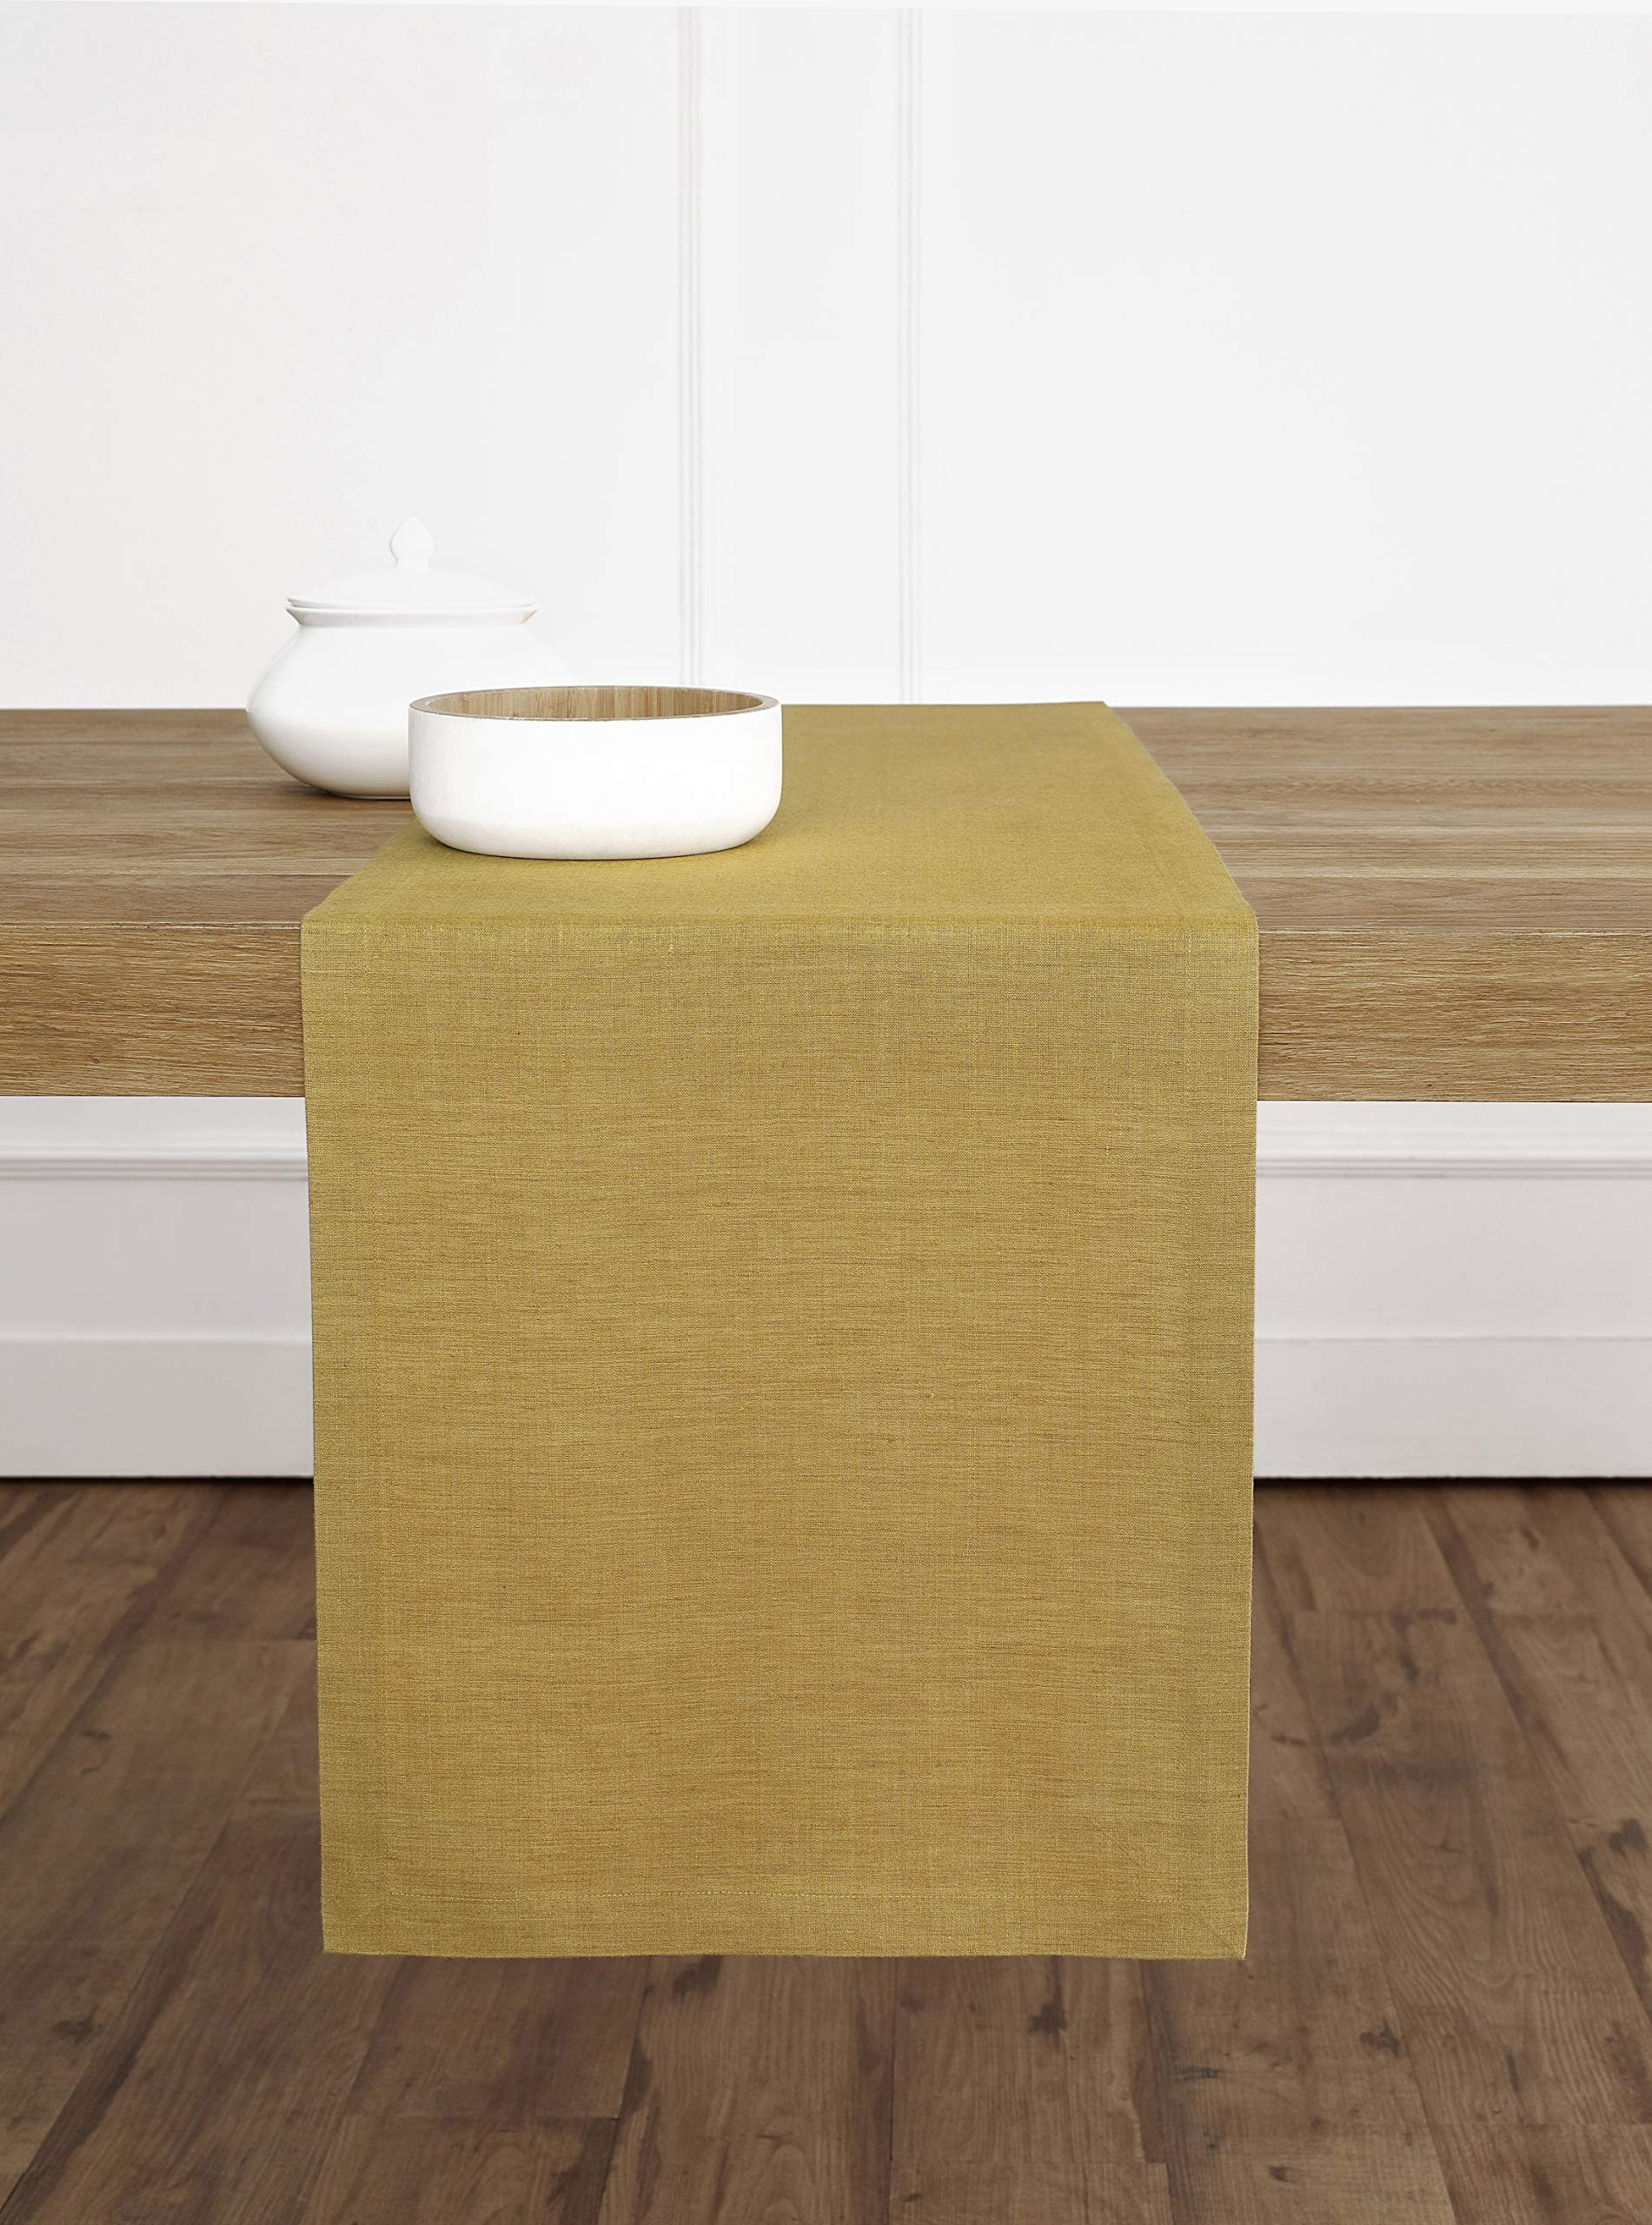 Solino Home 100% Pure Linen Table Runner – 14 x 60 Inch, Tesoro Runner, Natural and Handcrafted from European Flax – Mustard Gold